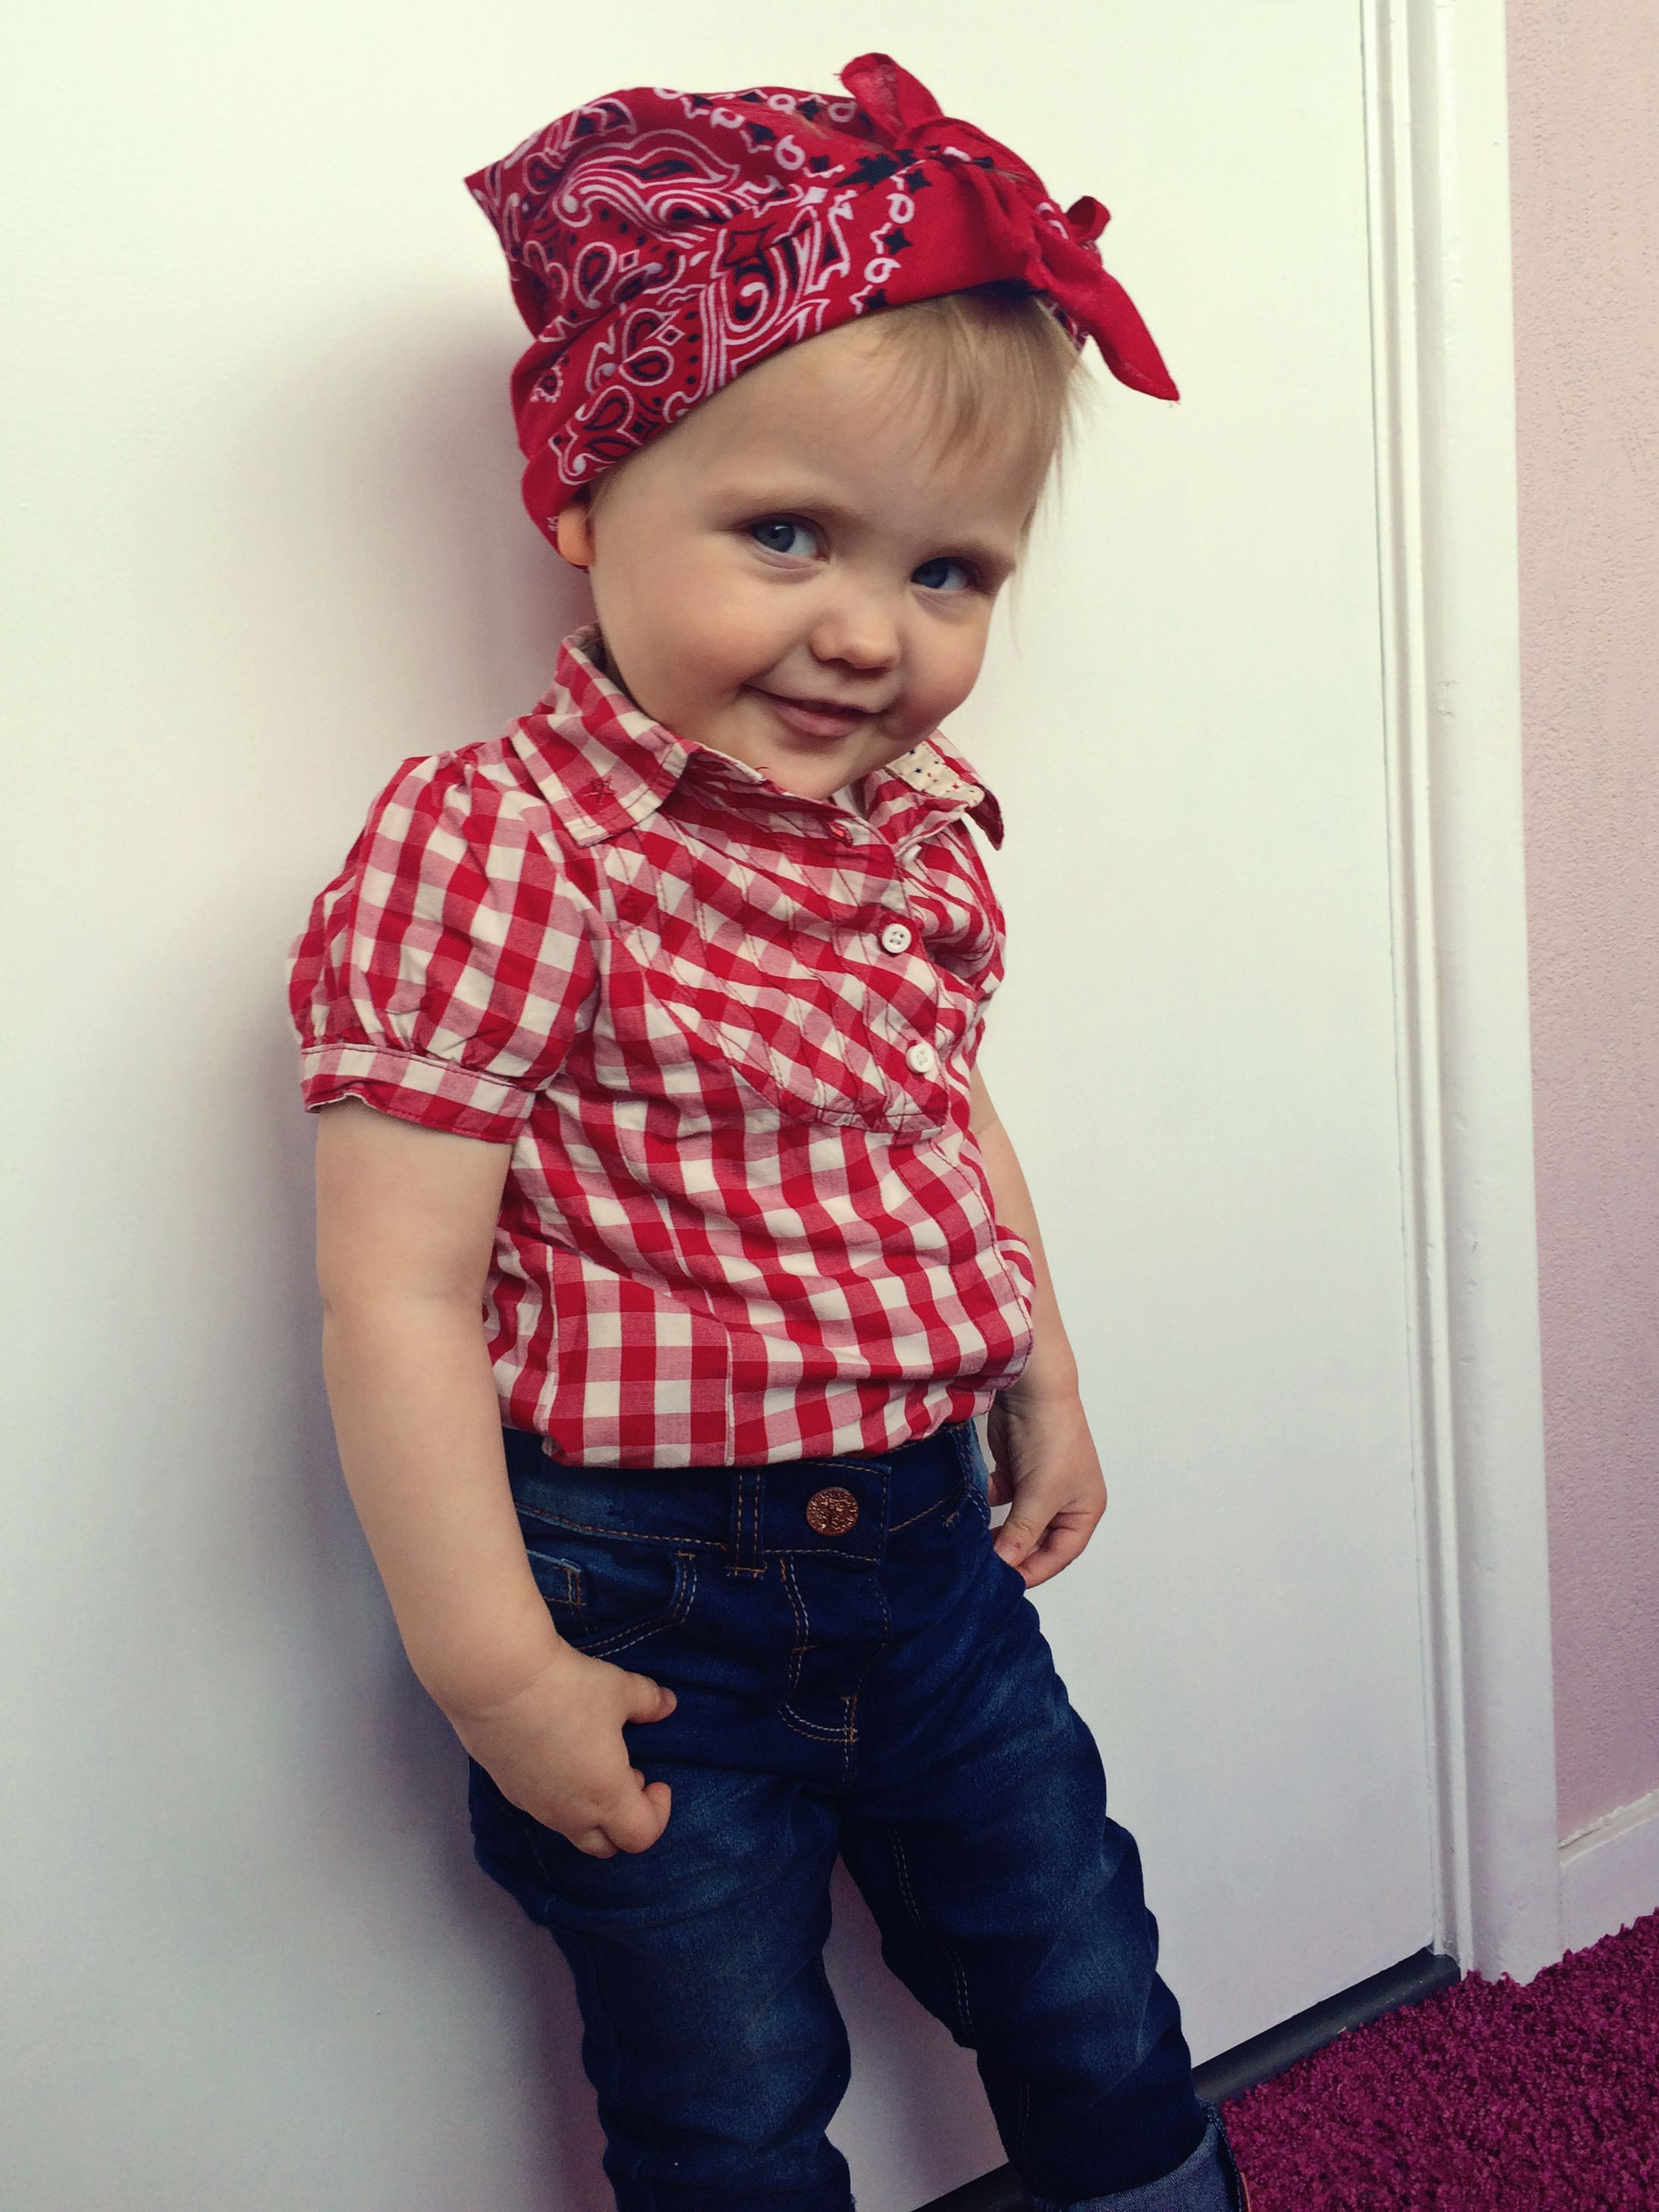 adbdda598 Cute rockabilly baby girl/toddler #rockabilly #photo #idea #toddler ...